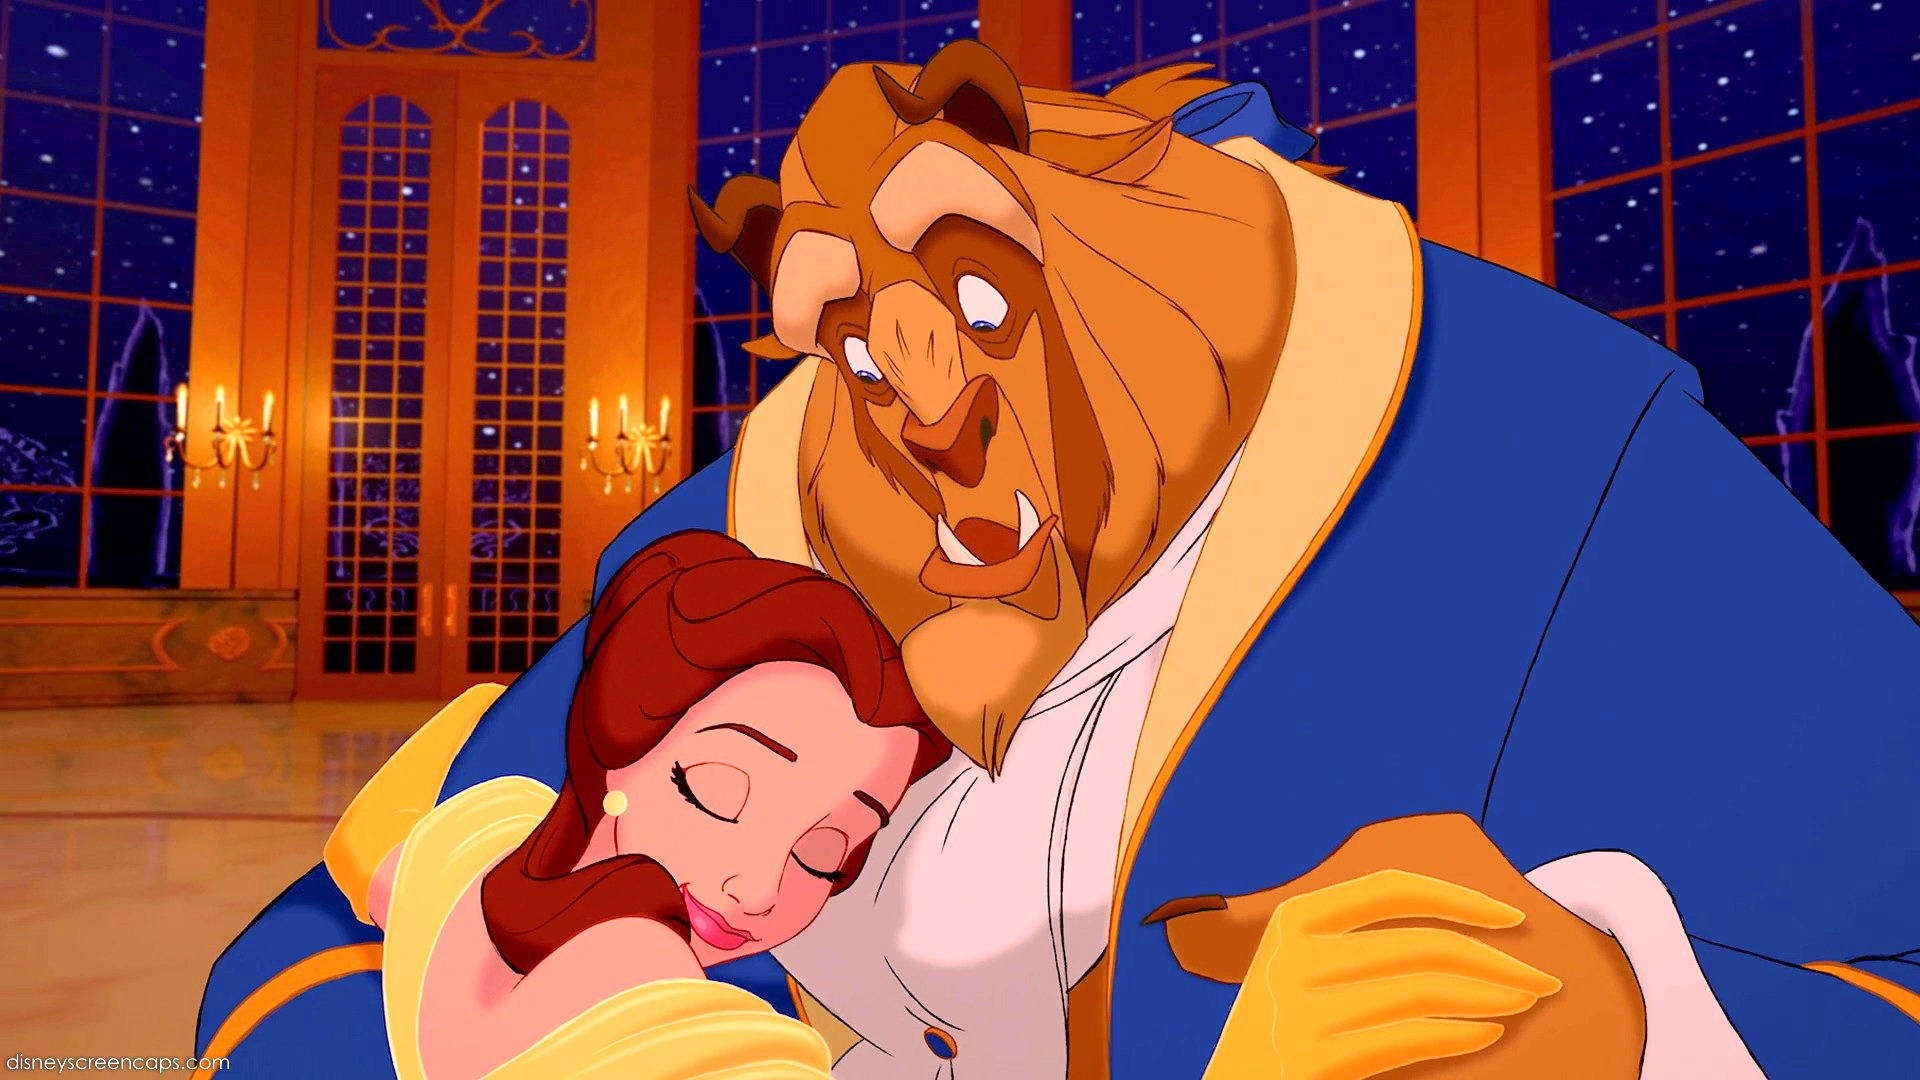 https://i1.wp.com/images6.fanpop.com/image/photos/32400000/if-you-give-trust-you-will-get-trust-beauty-and-the-beast-32448279-1920-1080.jpg